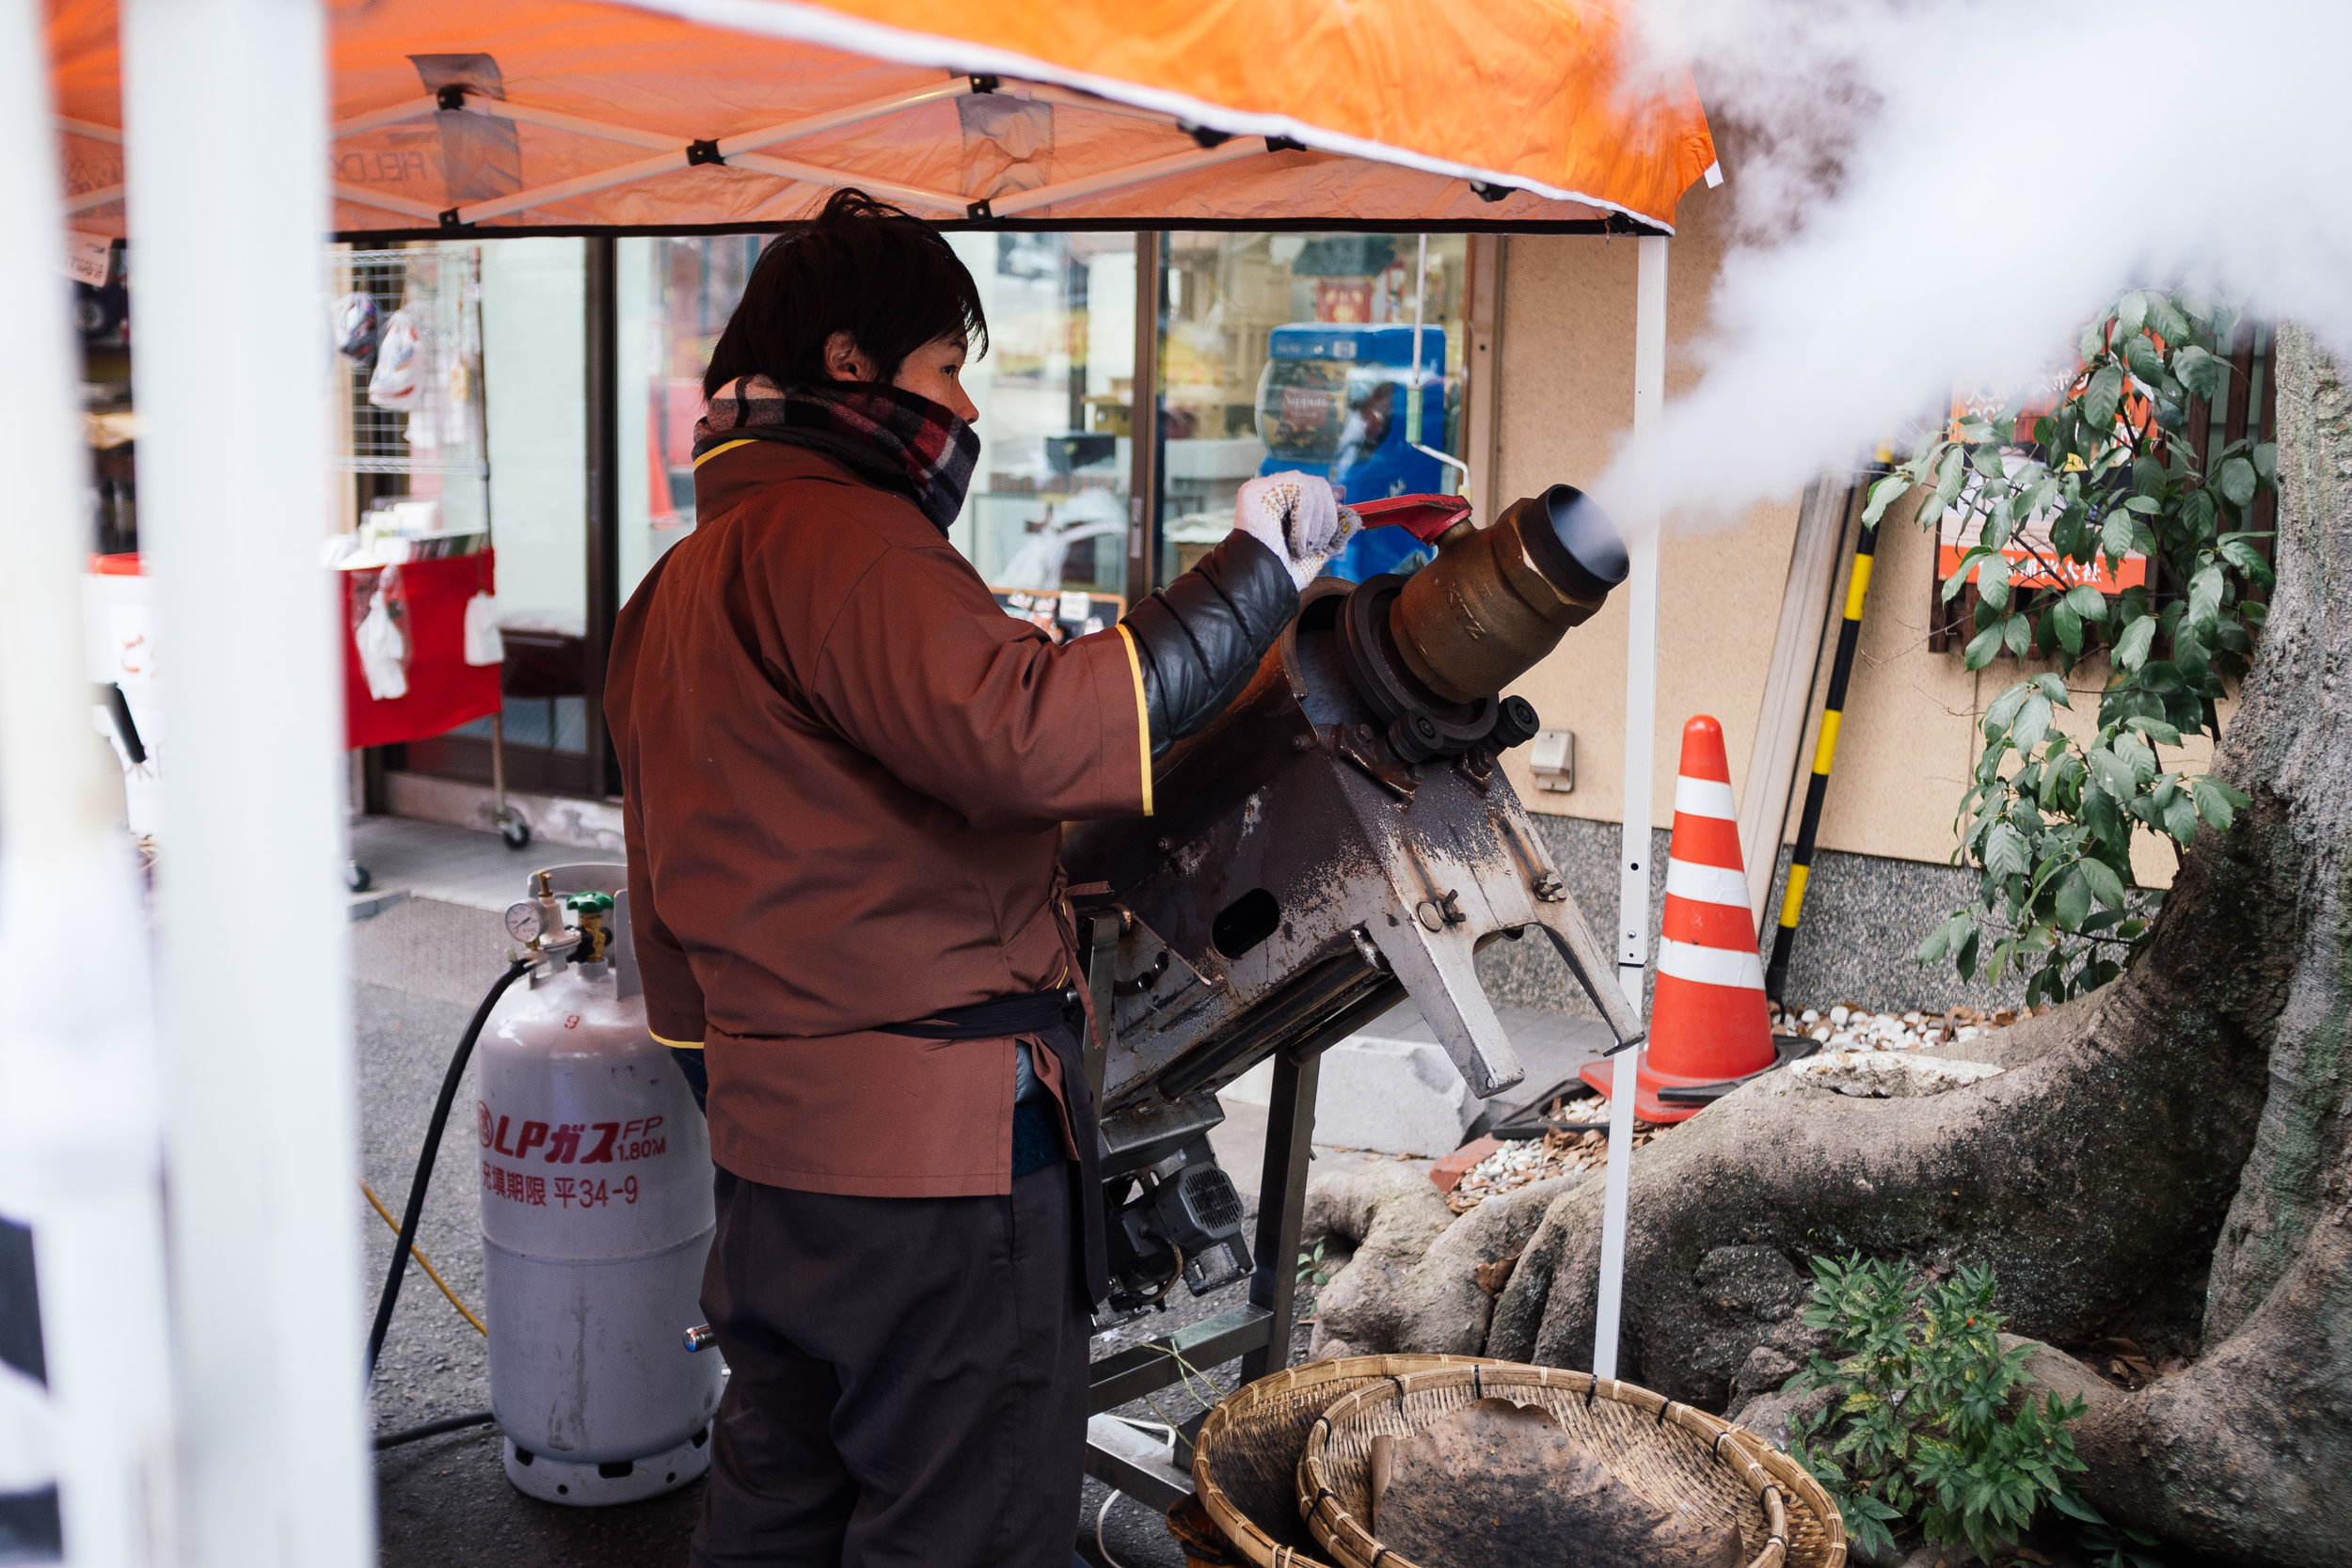 Kyoto Food Stall Smoke Machine.jpg